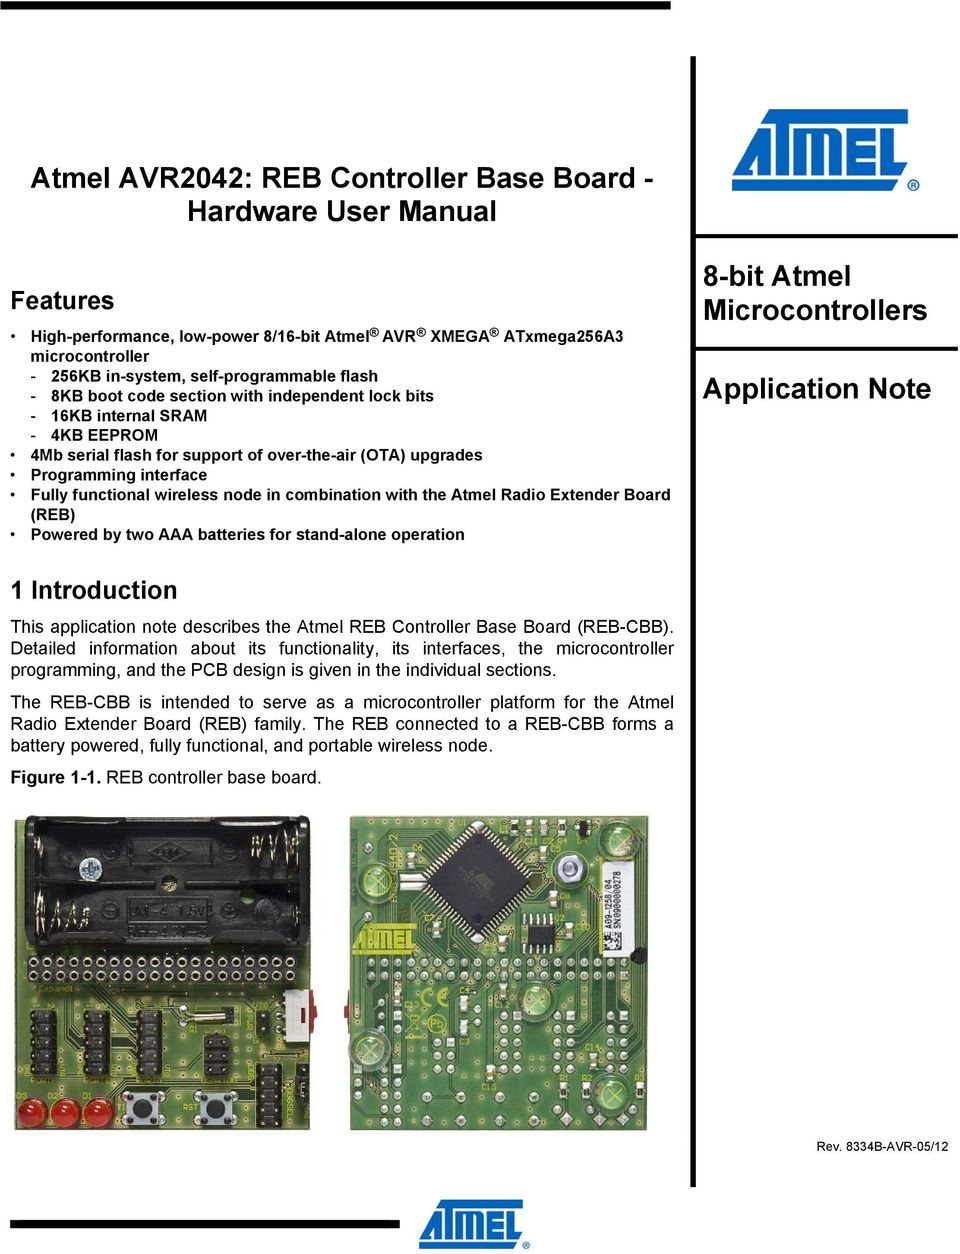 combination with the Atmel Radio Extender Board (REB) Powered by two AAA batteries for stand-alone operation 8-bit Atmel Microcontrollers Application Note 1 Introduction This application note